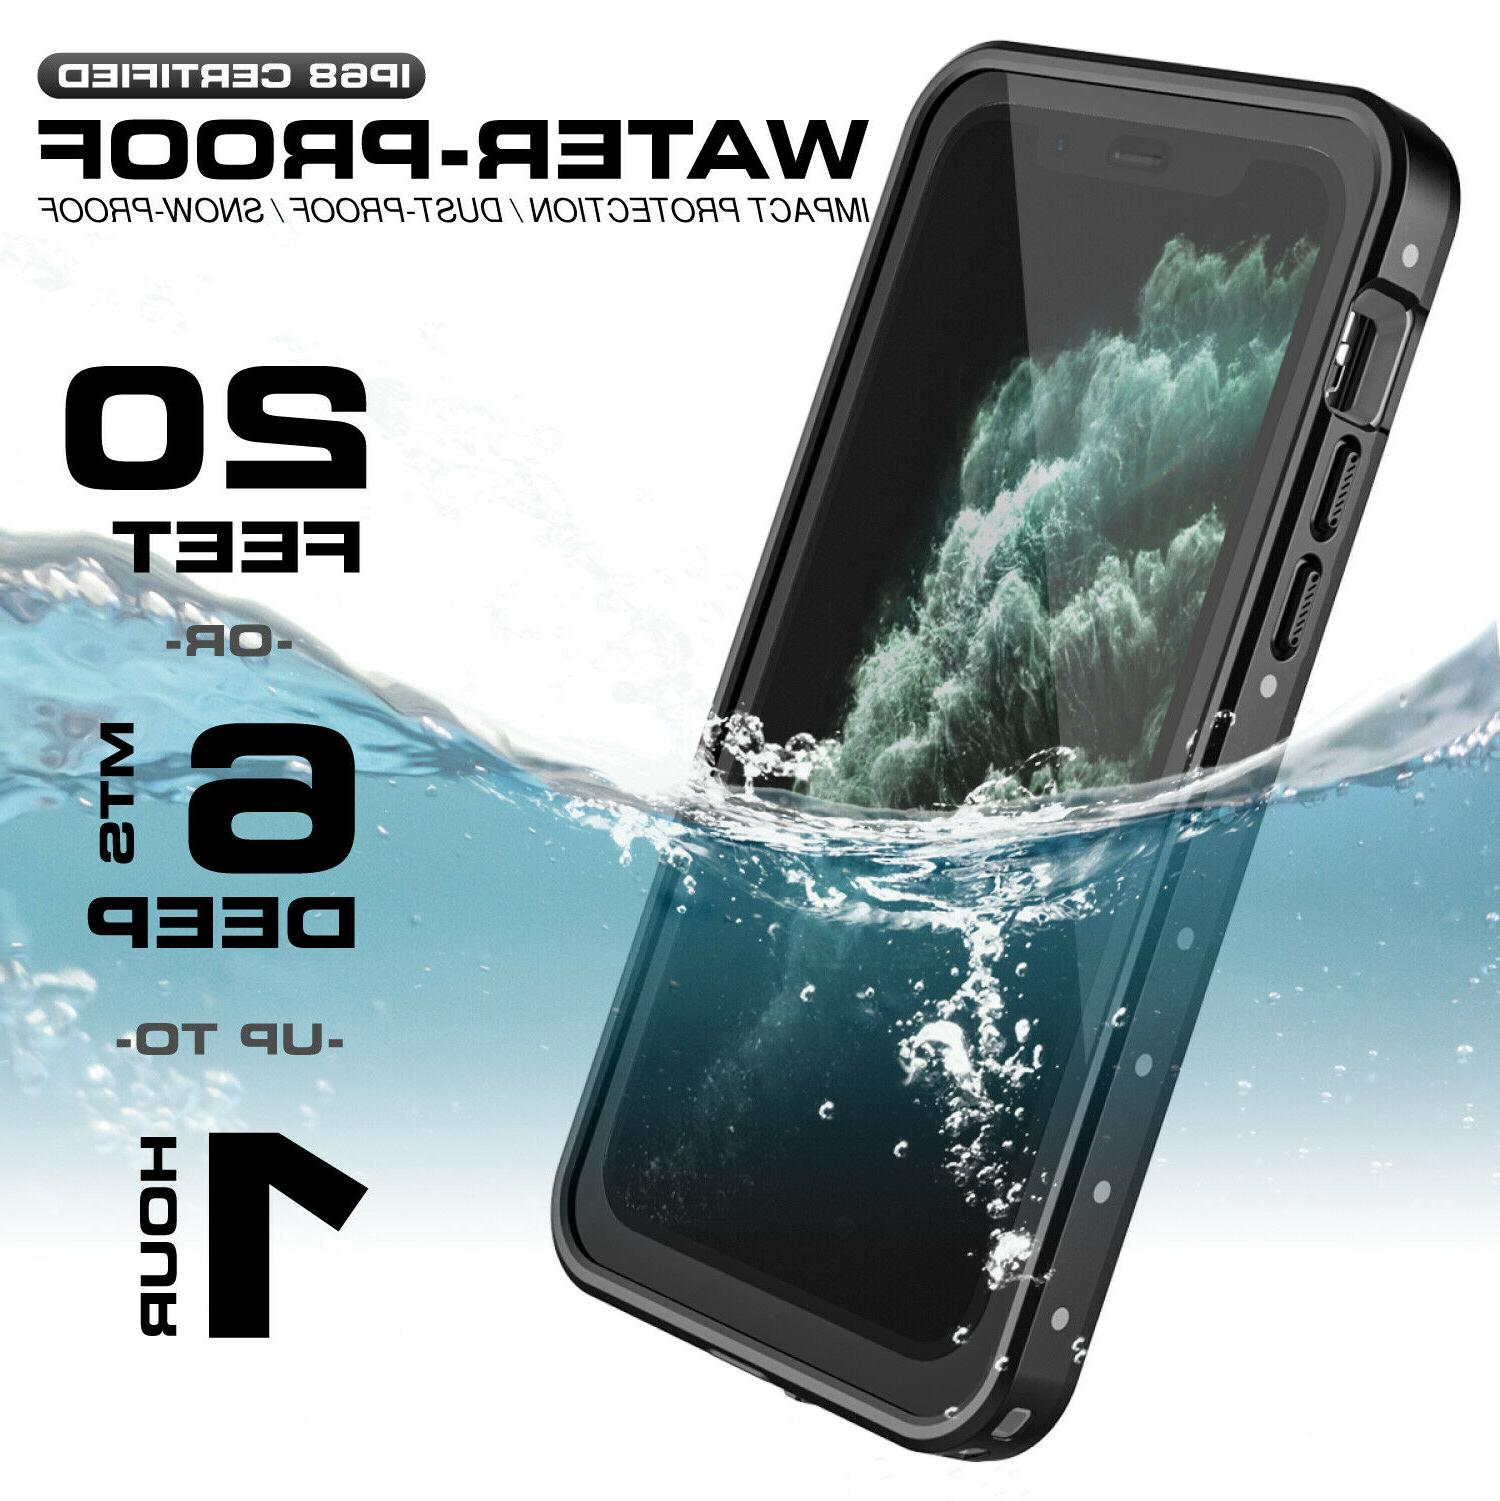 For / Pro Max Case Waterproof Shockproof Series